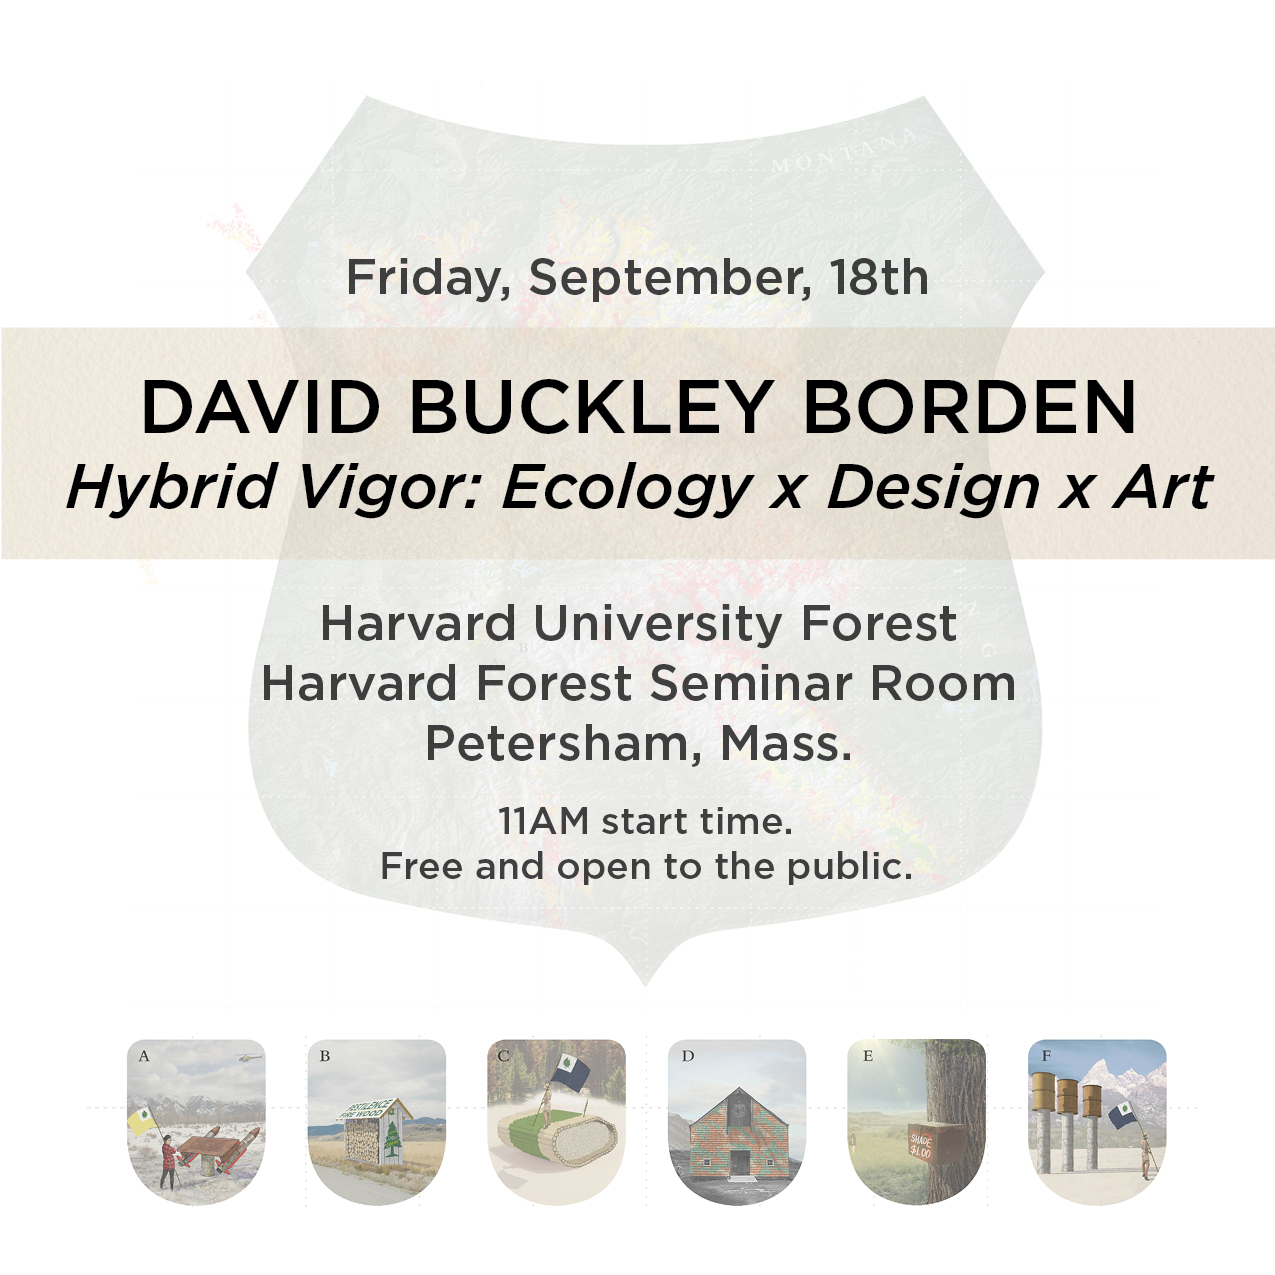 harvardforestDBB